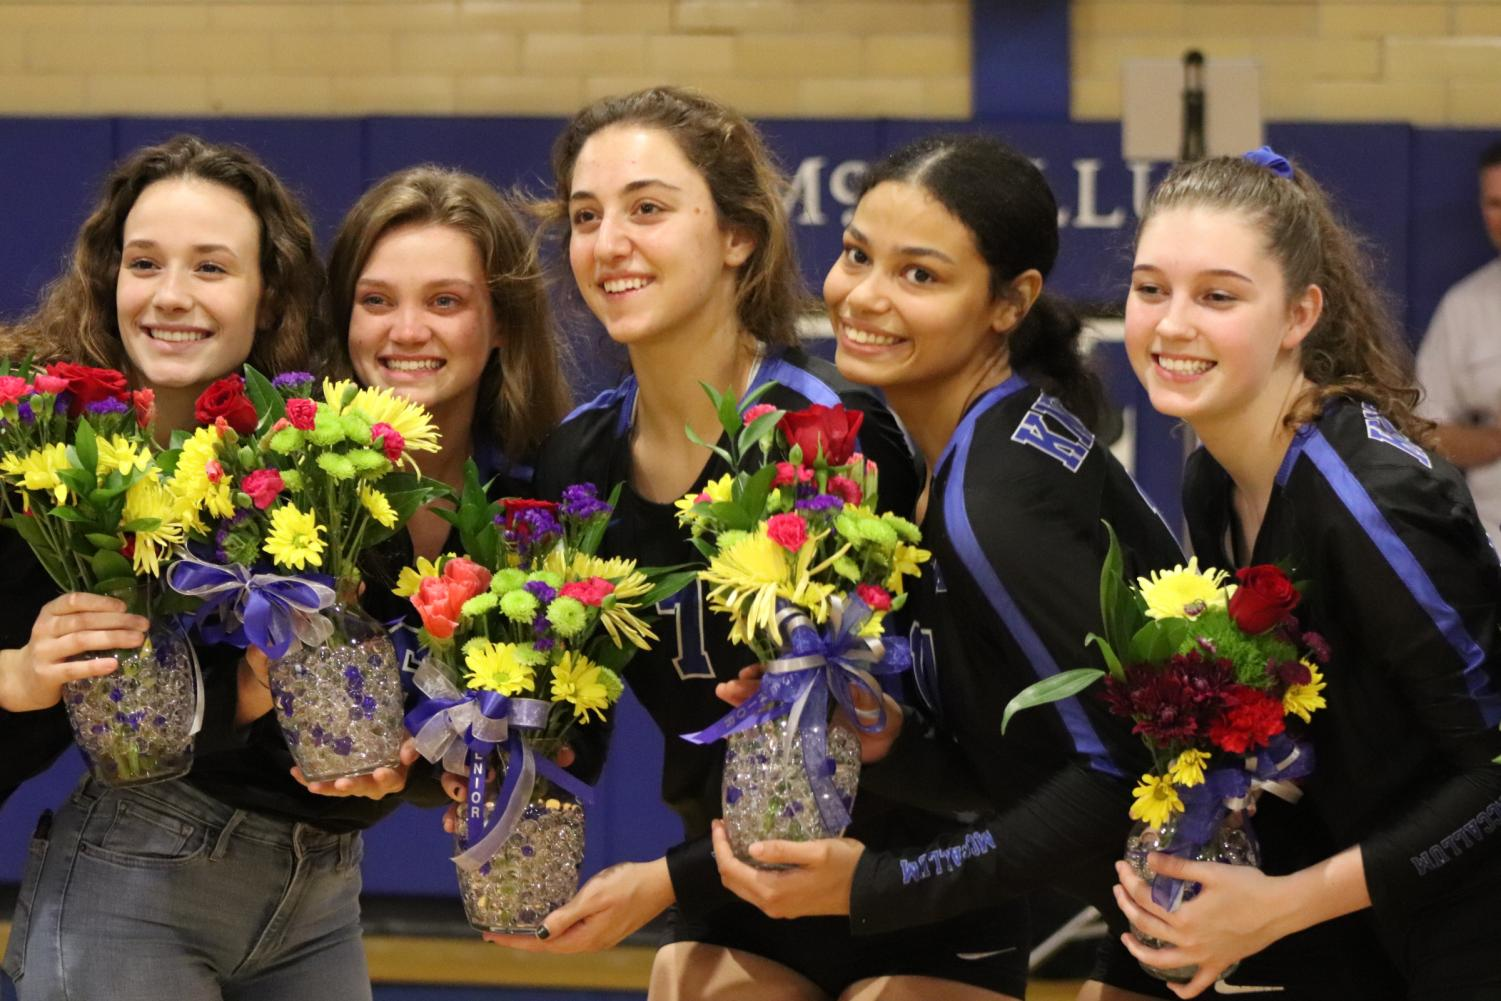 Fannin (fourth from left) and her senior teammates receive flowers at the Senior Night game against Dripping Springs. Photo by Gabby Sherwood.